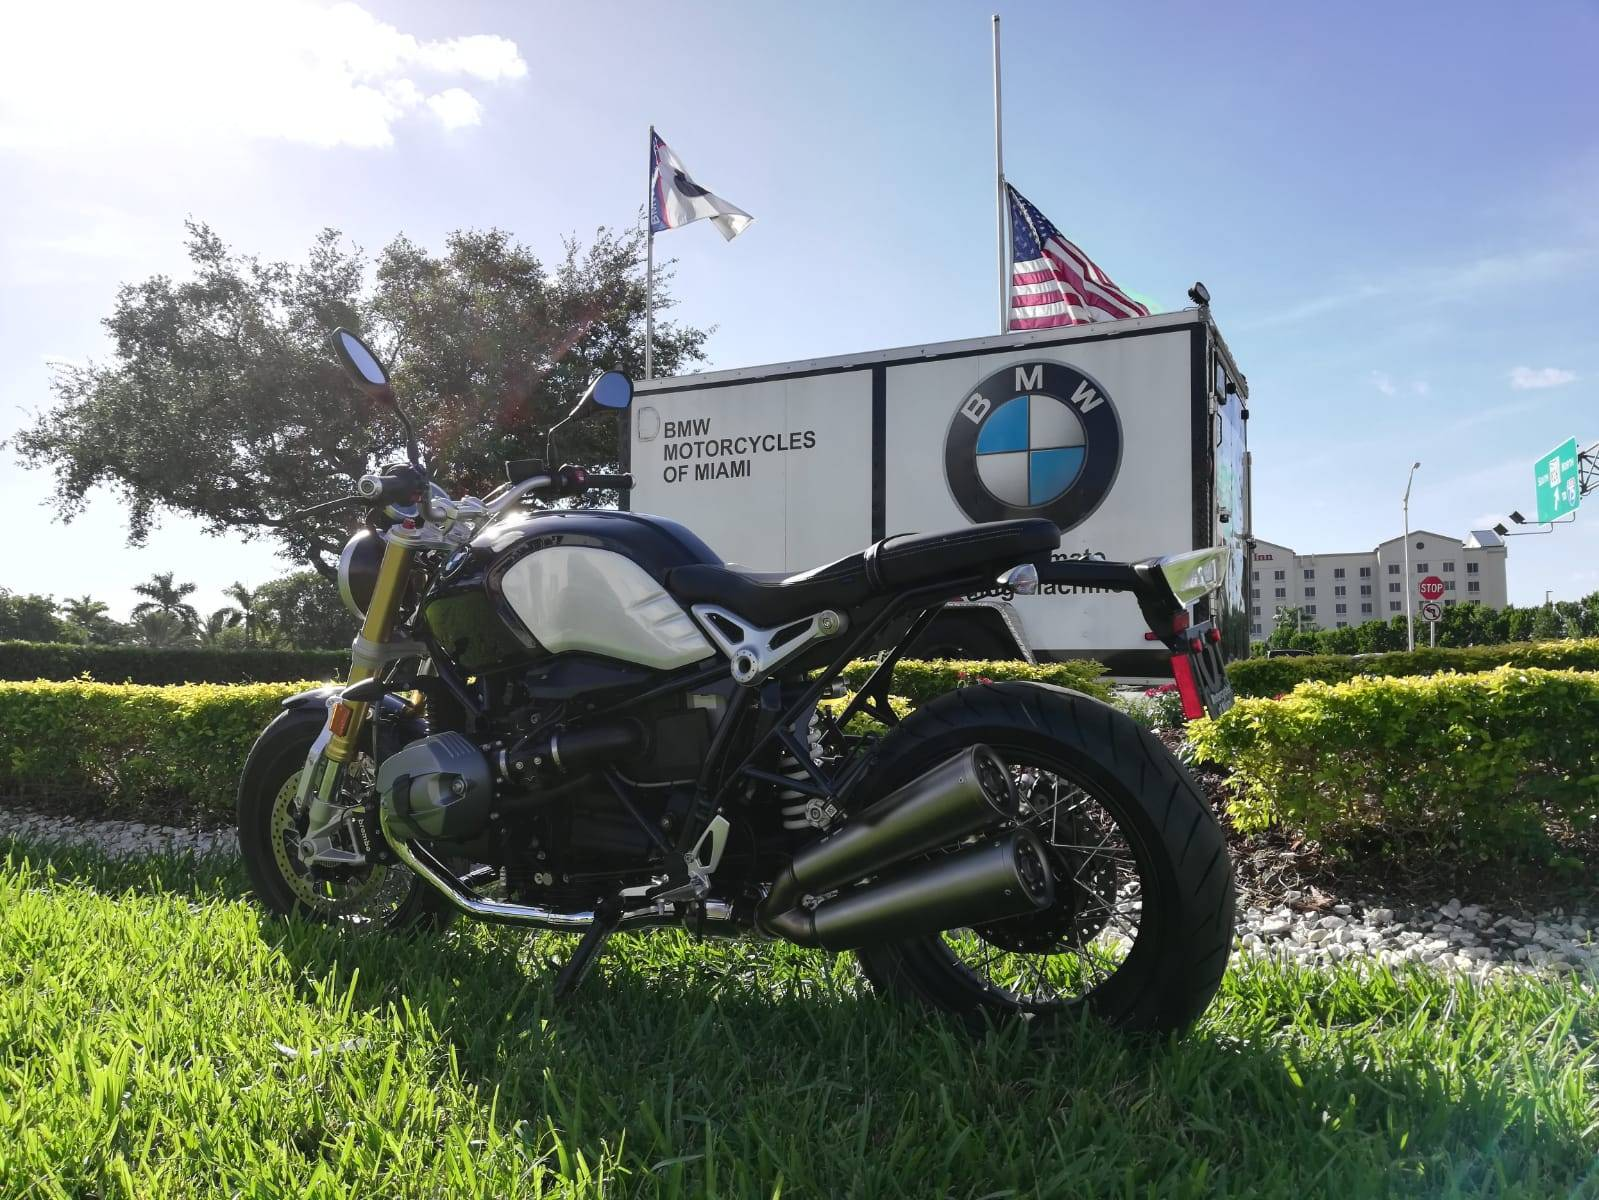 New 2019 BMW R NineT for sale, BMW for sale, BMW Motorcycle Café Racer, new BMW Caffe, Cafe Racer, BMW - Photo 6